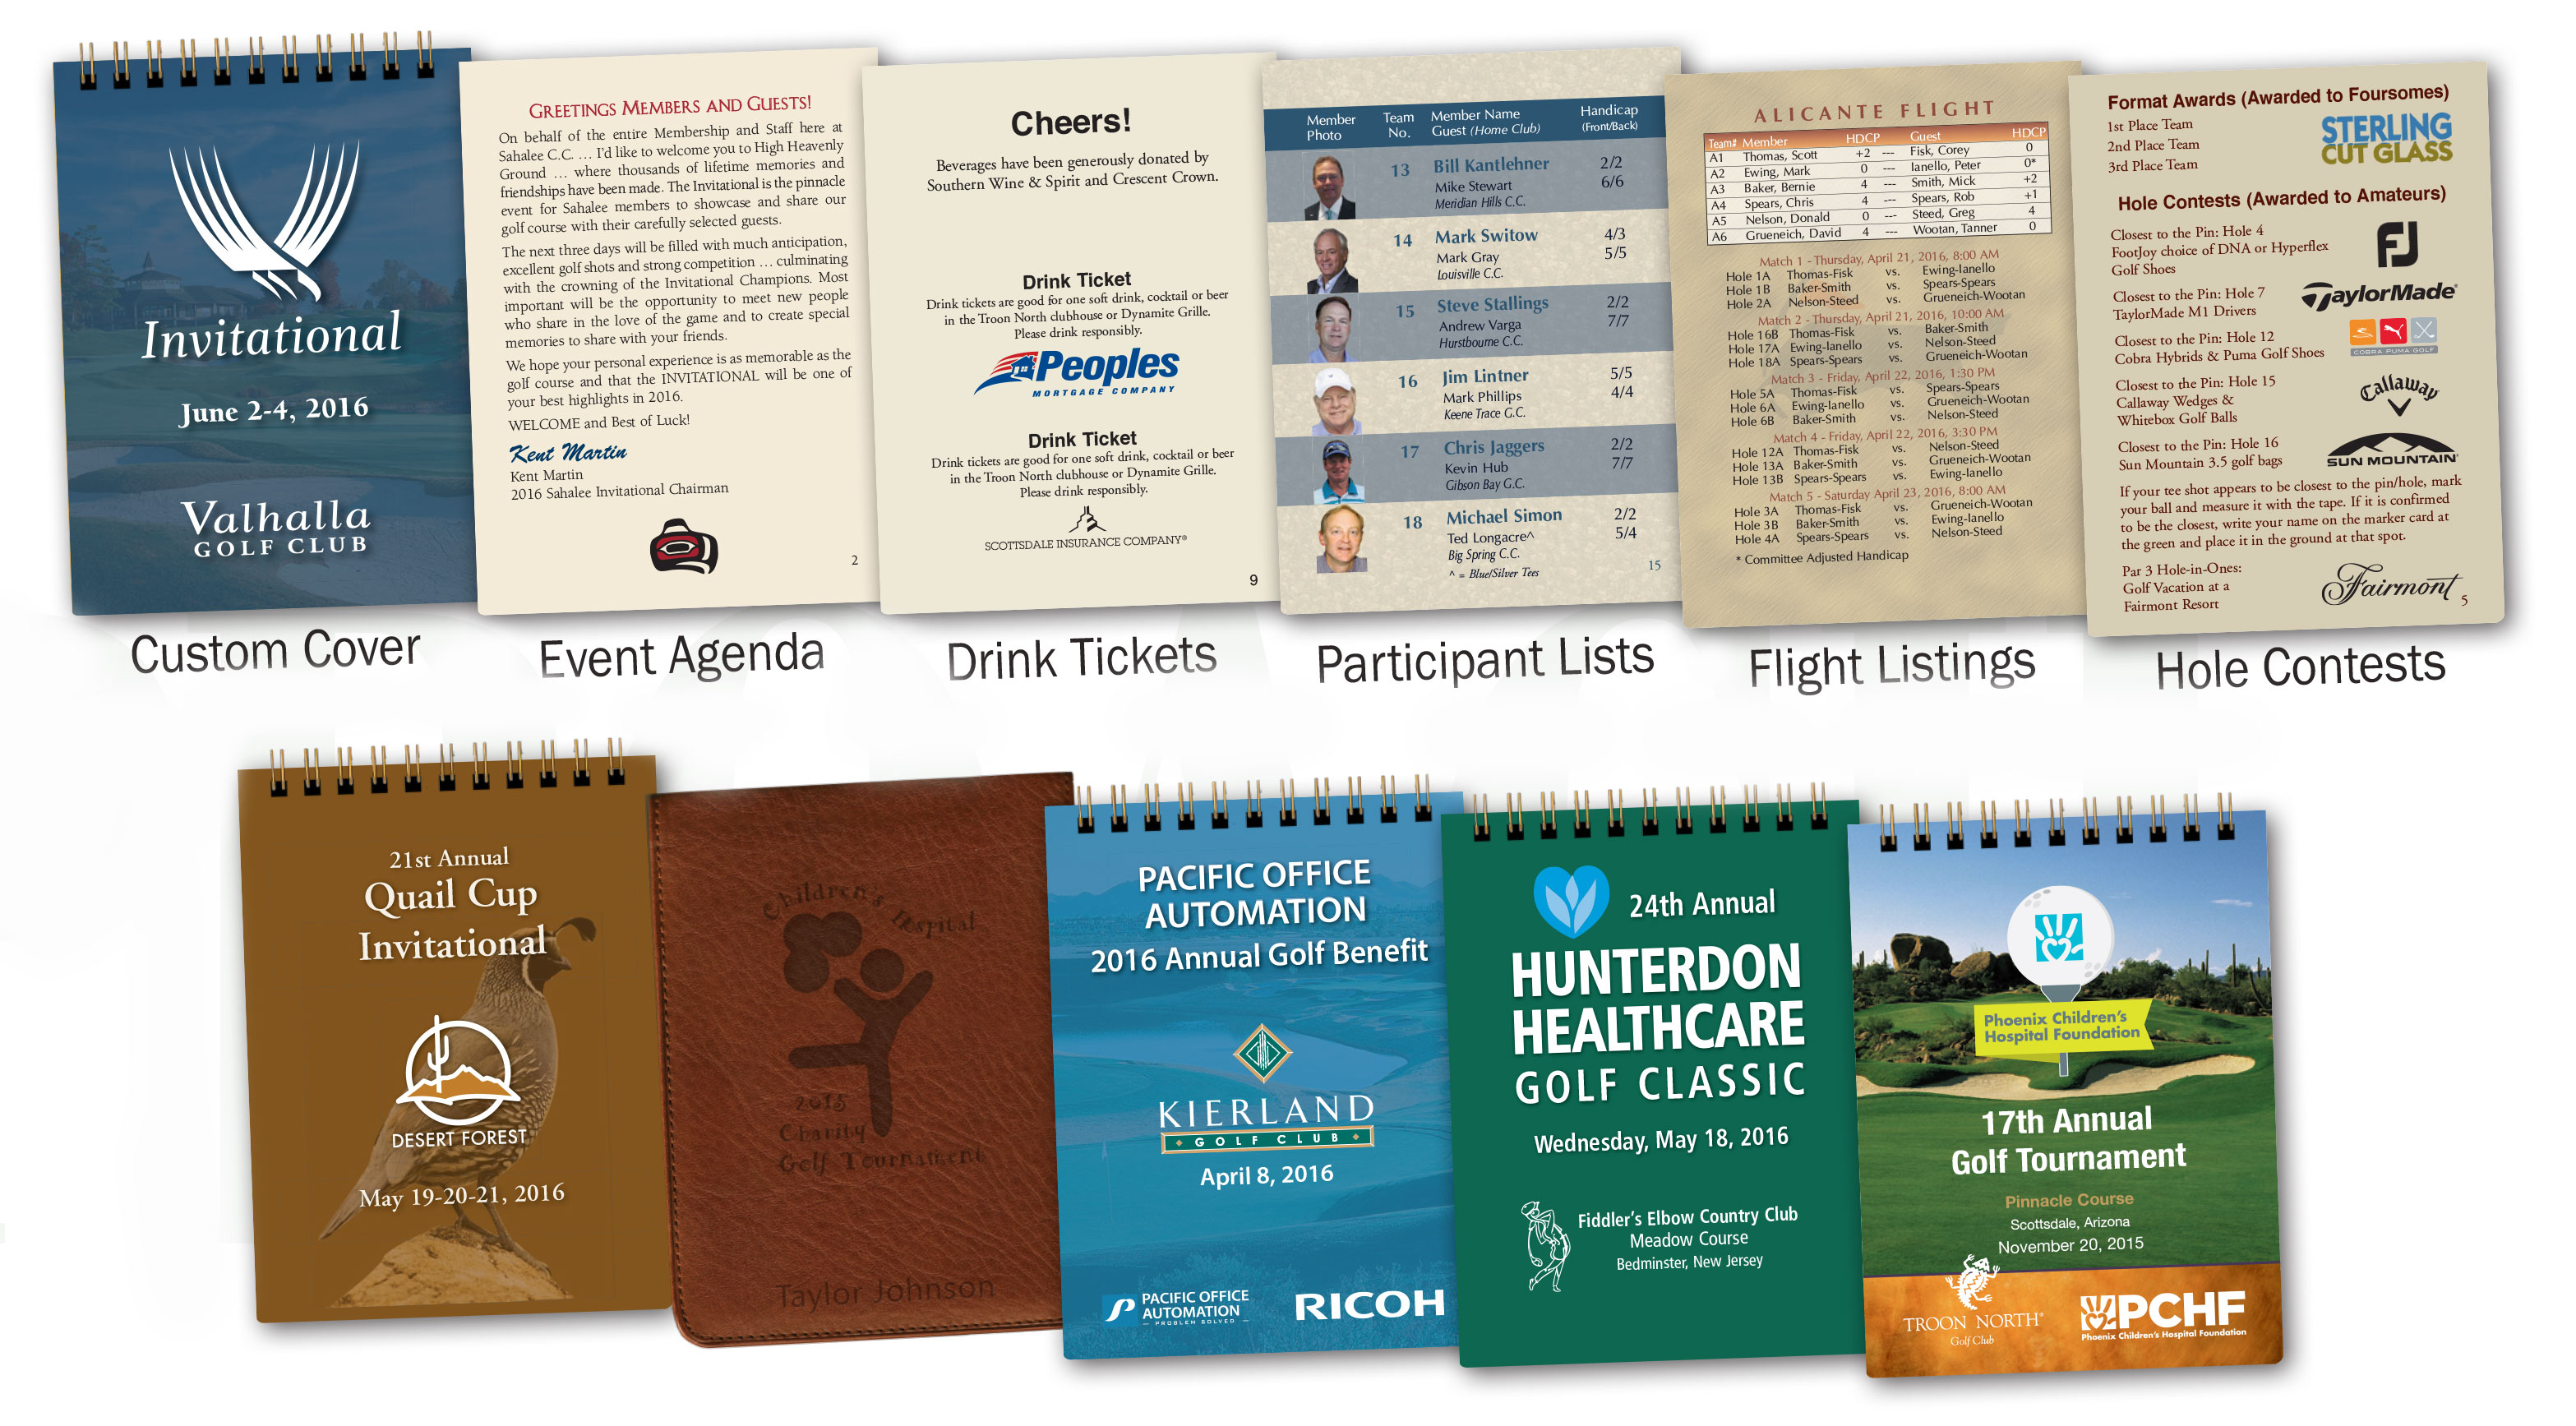 Best approach event books corporate outings charity fundraisers member events invitational tournaments stopboris Gallery